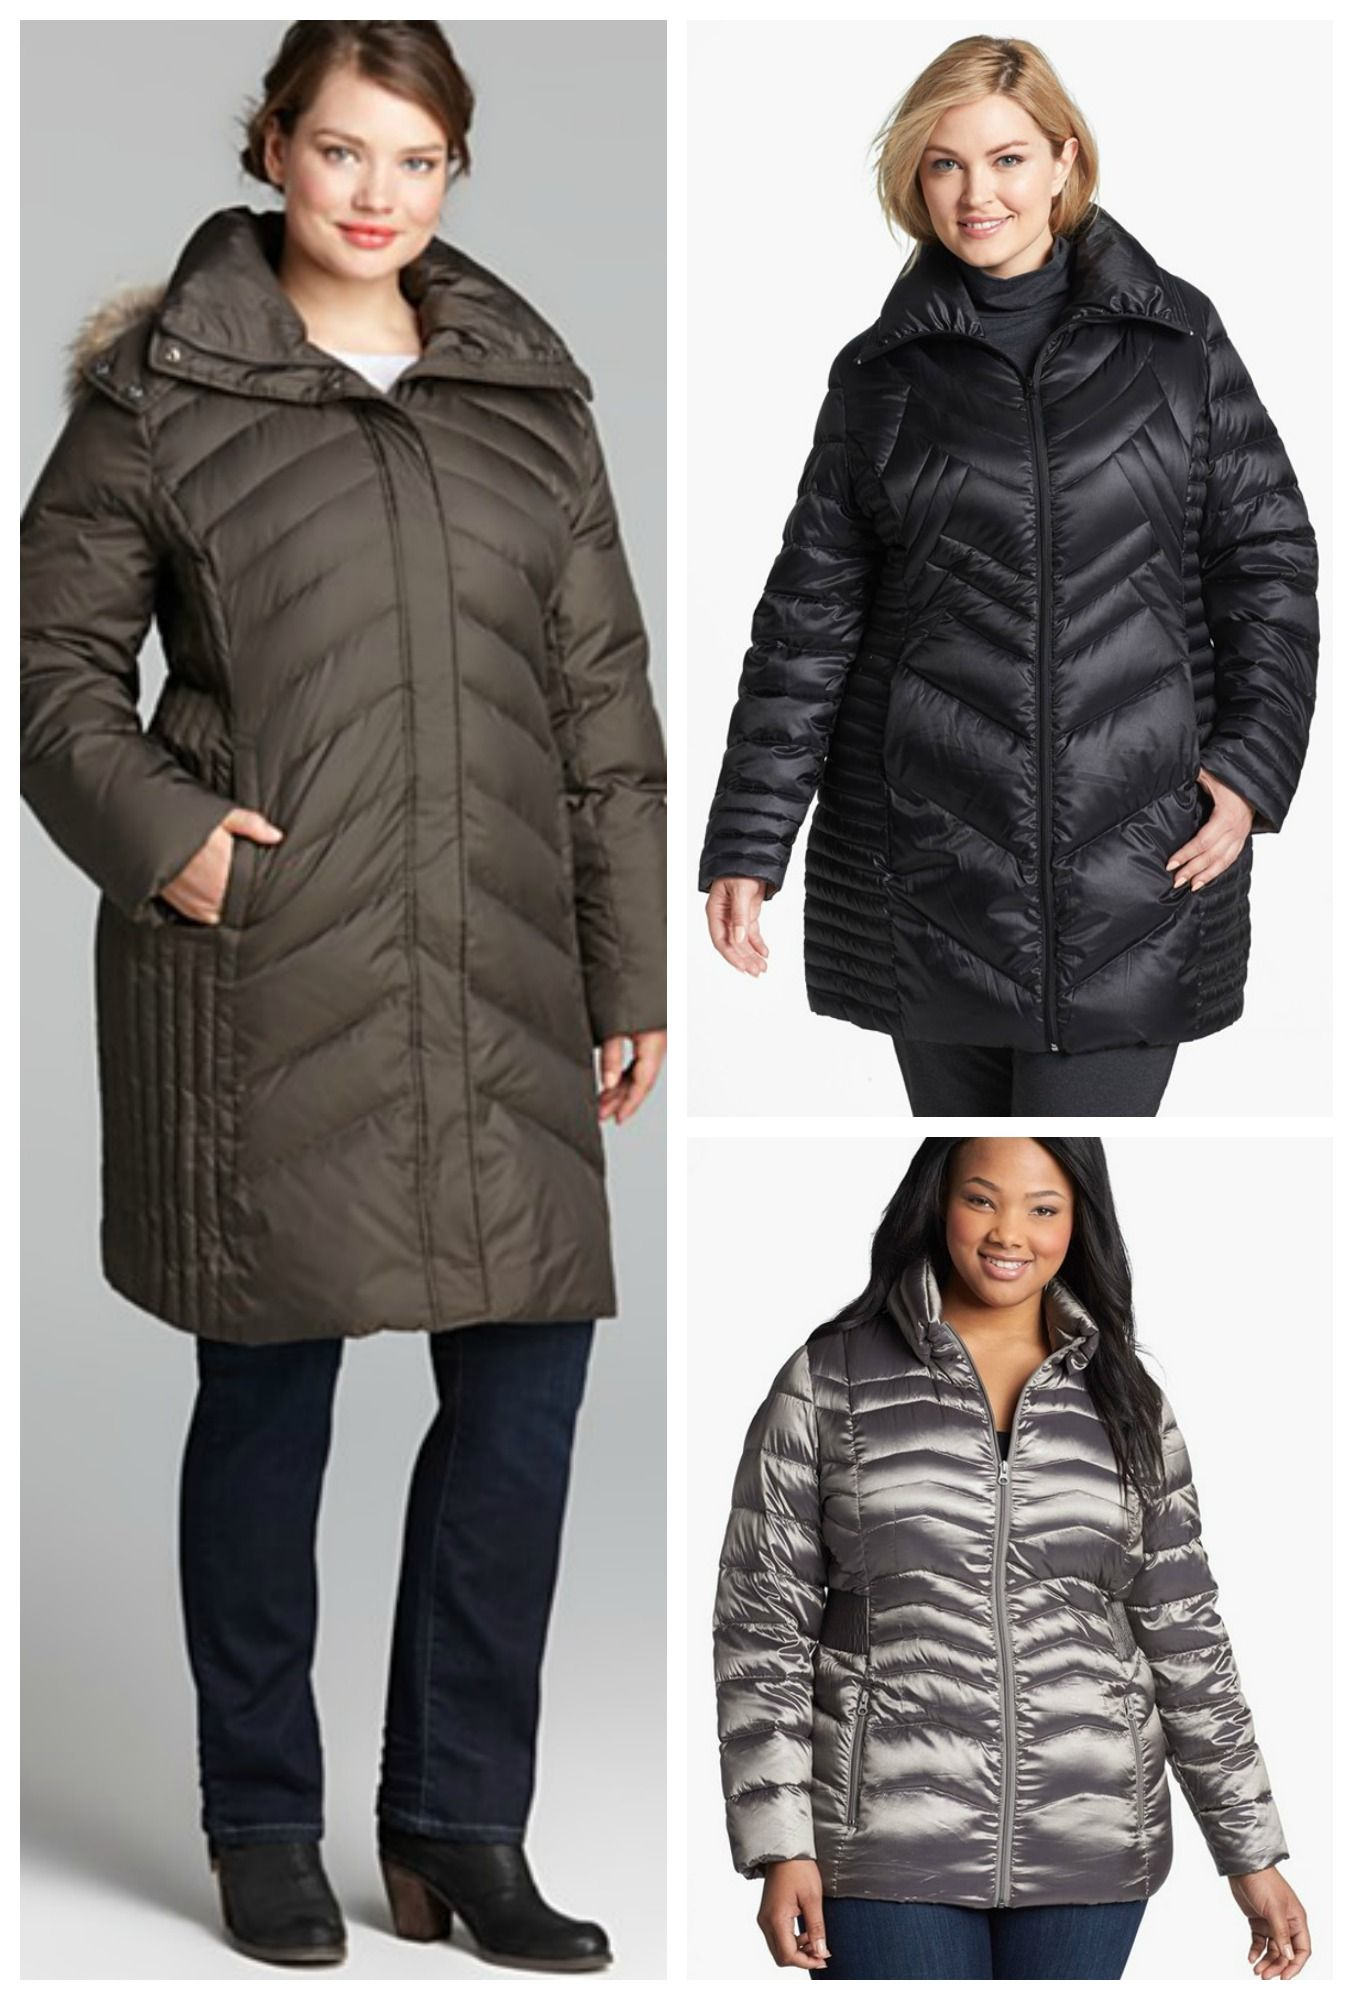 style 101: your fall plus size coats fit and style guide | curves